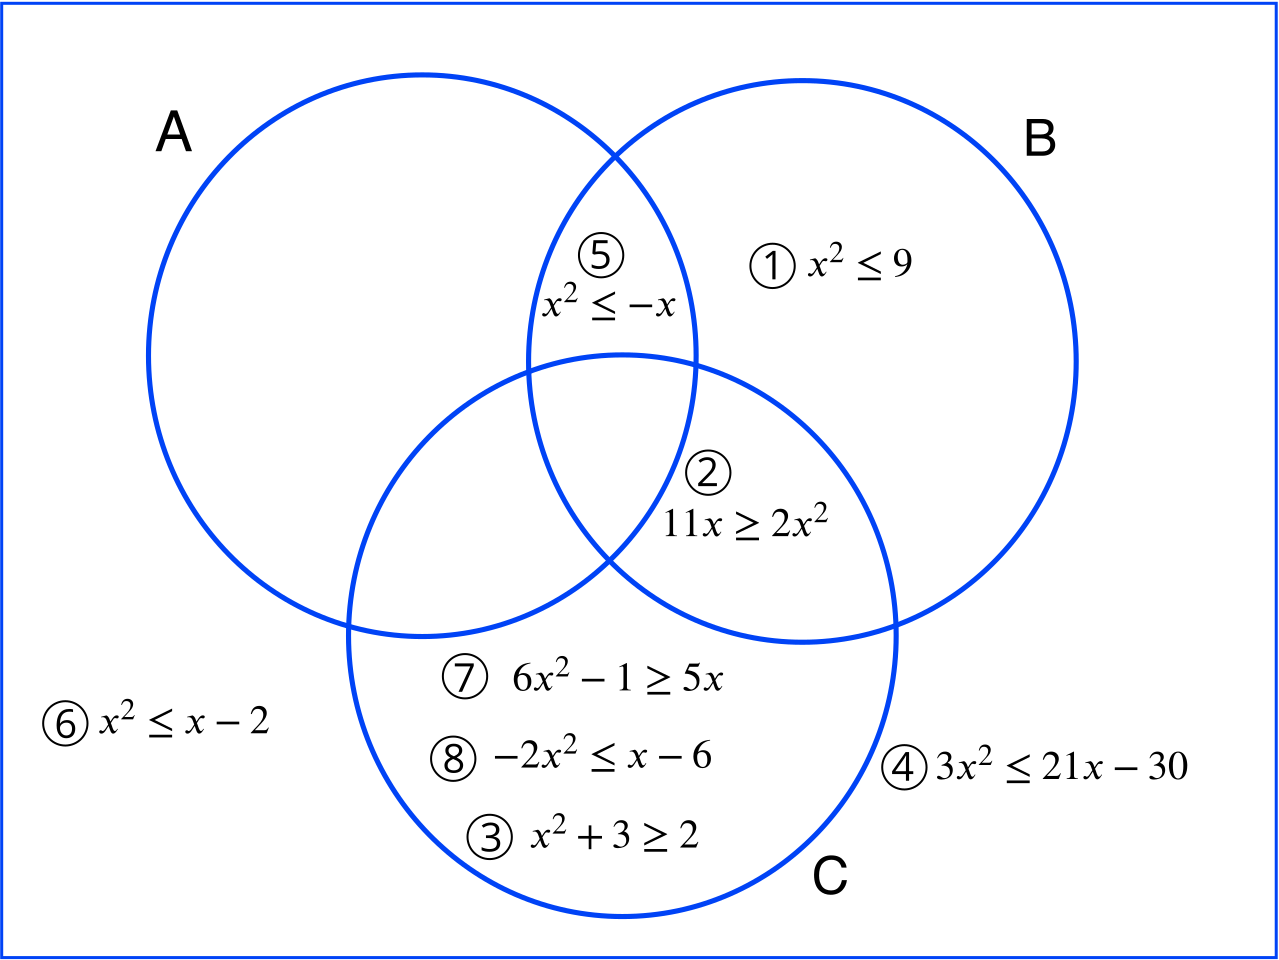 Venn diagram showing where each inequality lies with empty regions A and C, and A, B and C.